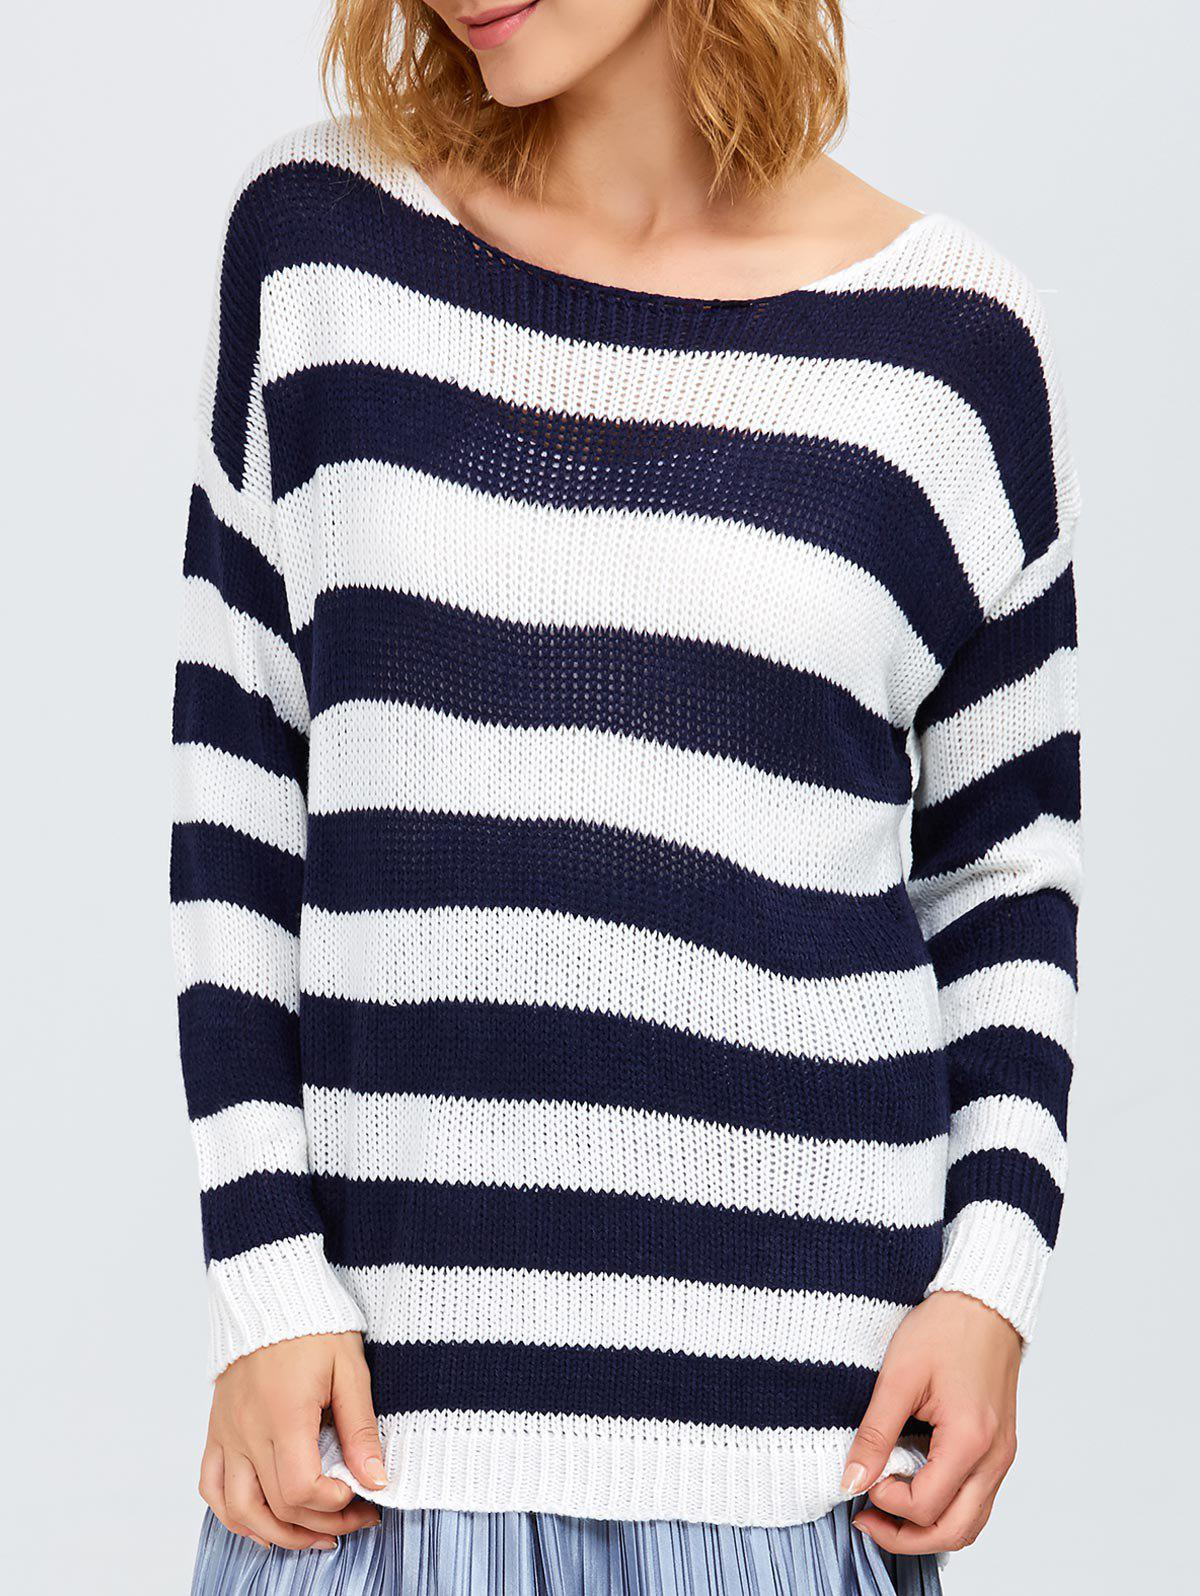 Round Neck Striped Tunic Sweater round neck striped ripped sweater